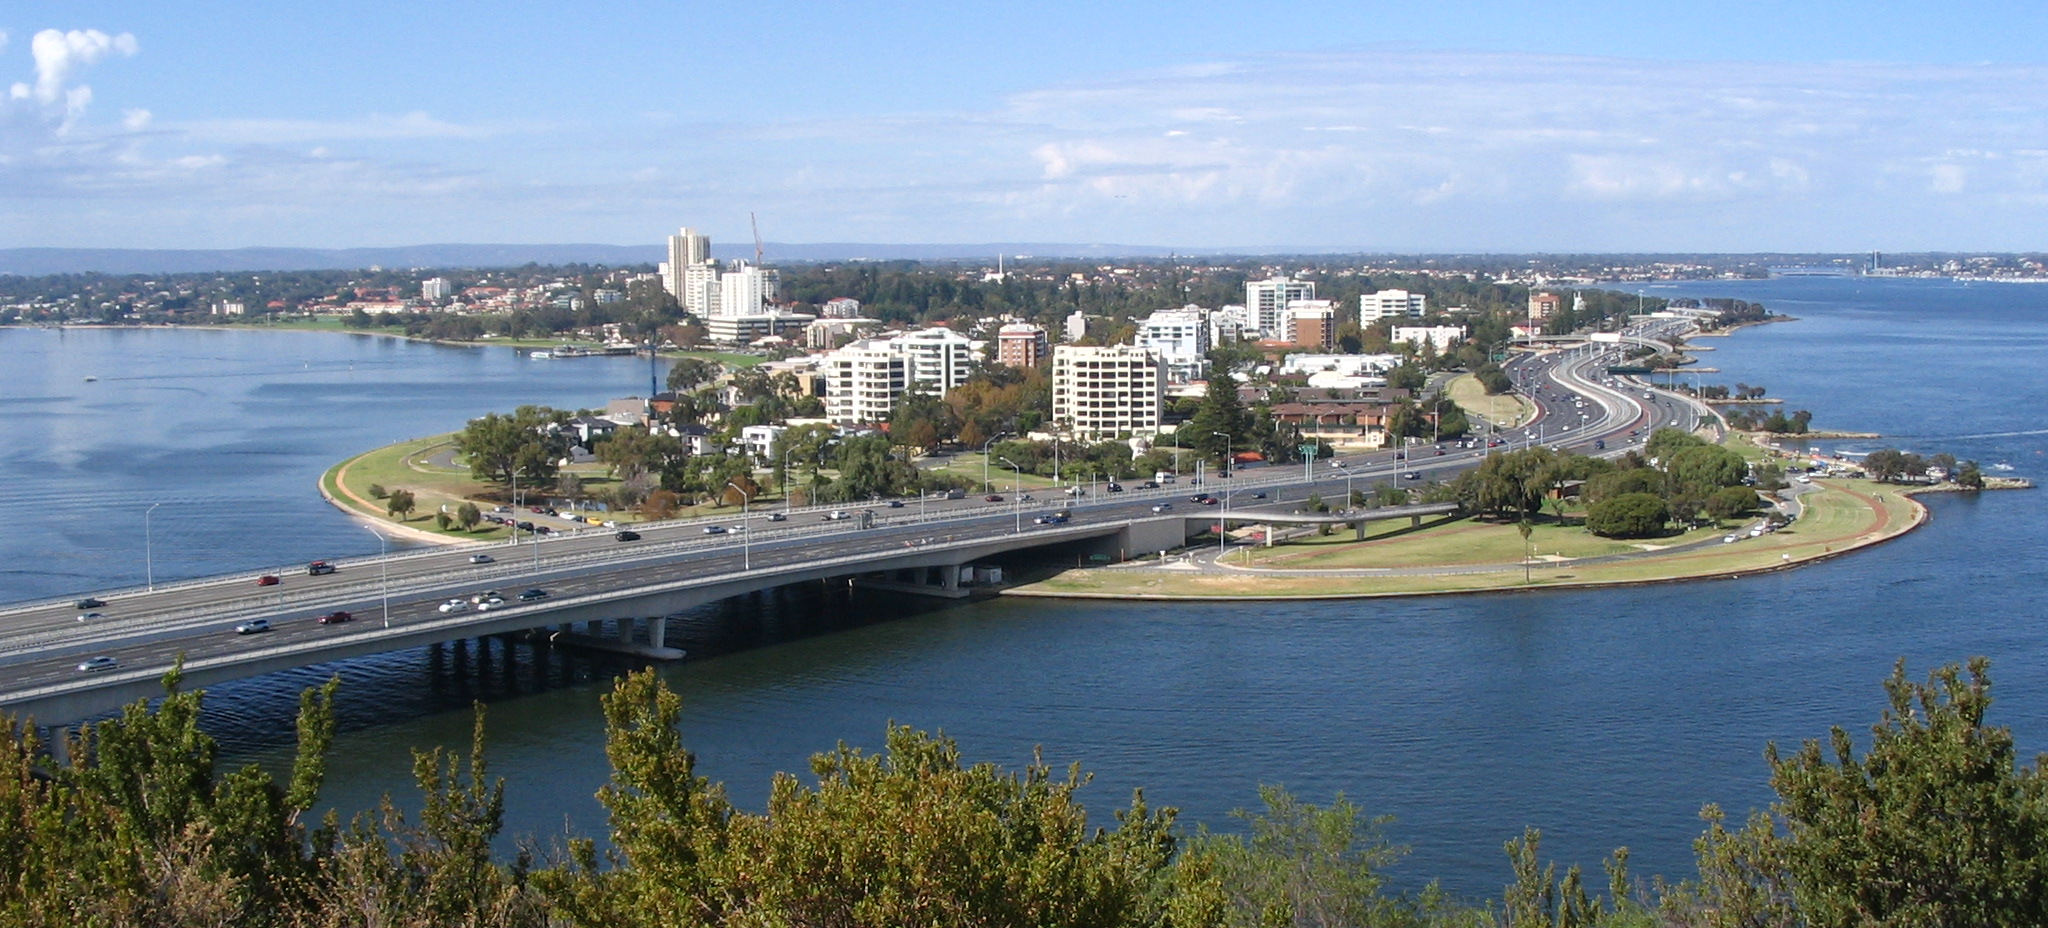 Kings Park Perth Photos File:south Perth From Kings